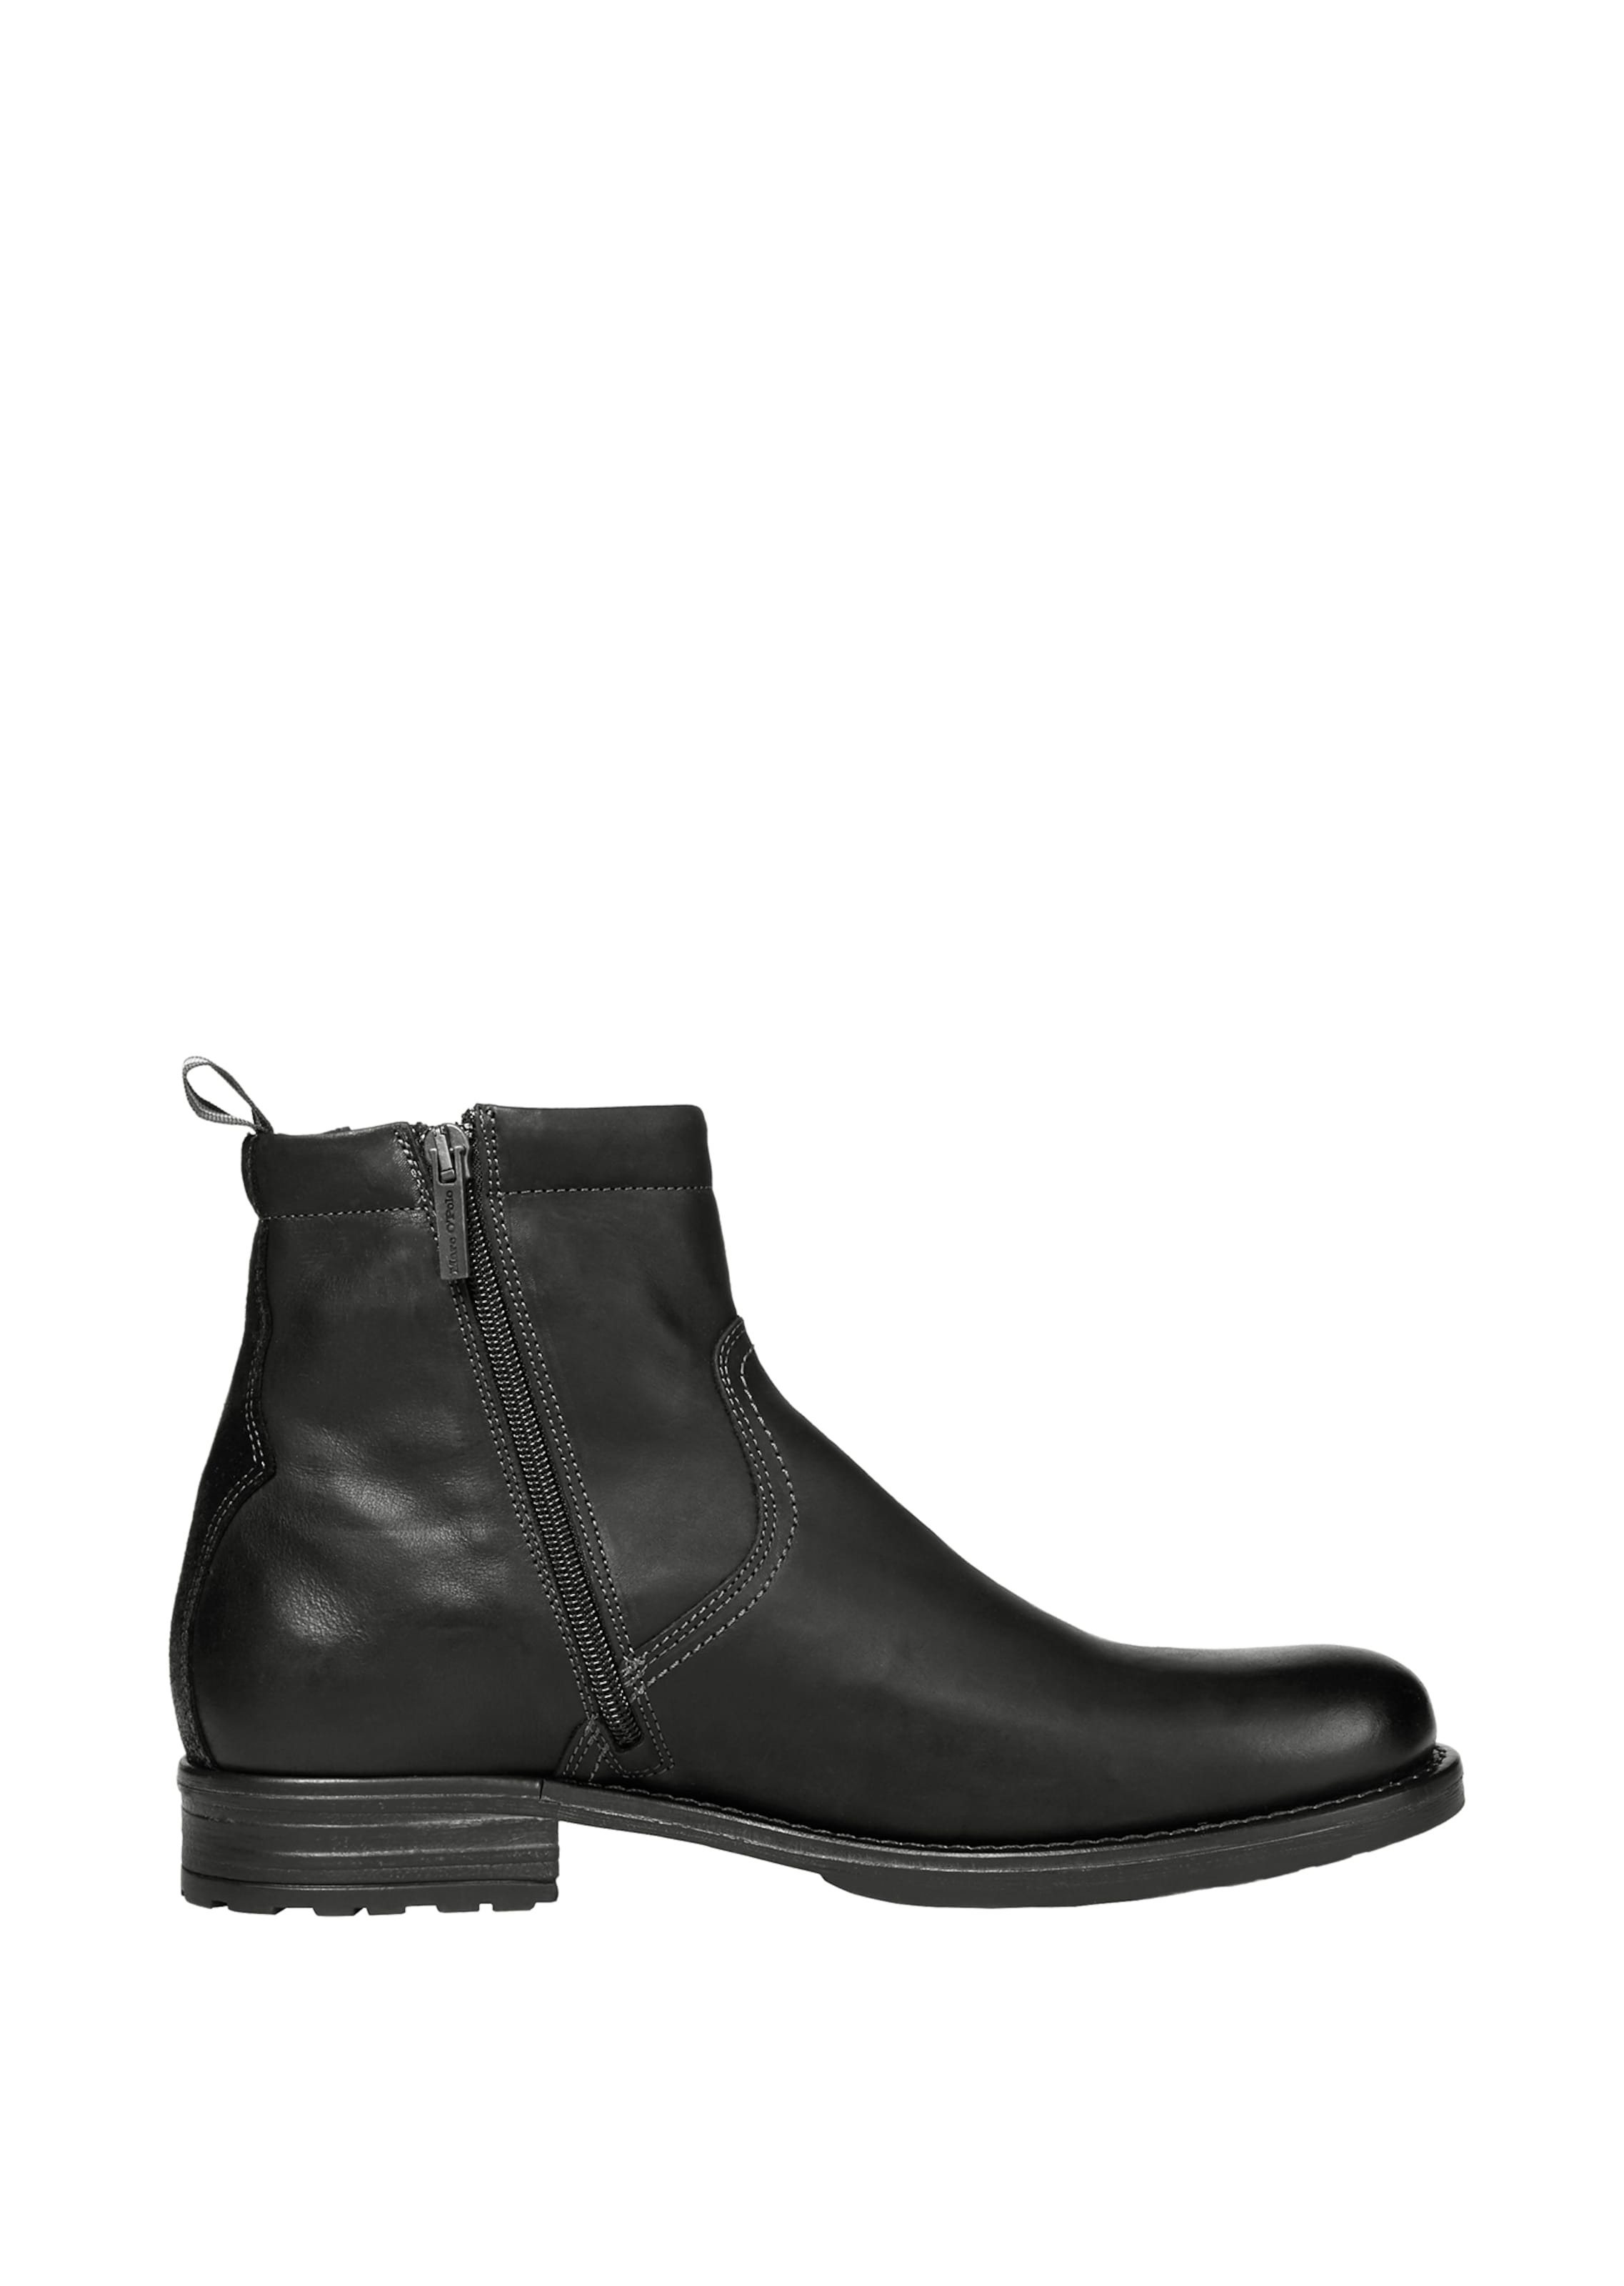 Schwarz In Boots Marc Chelsea O'polo 8nwvNm0